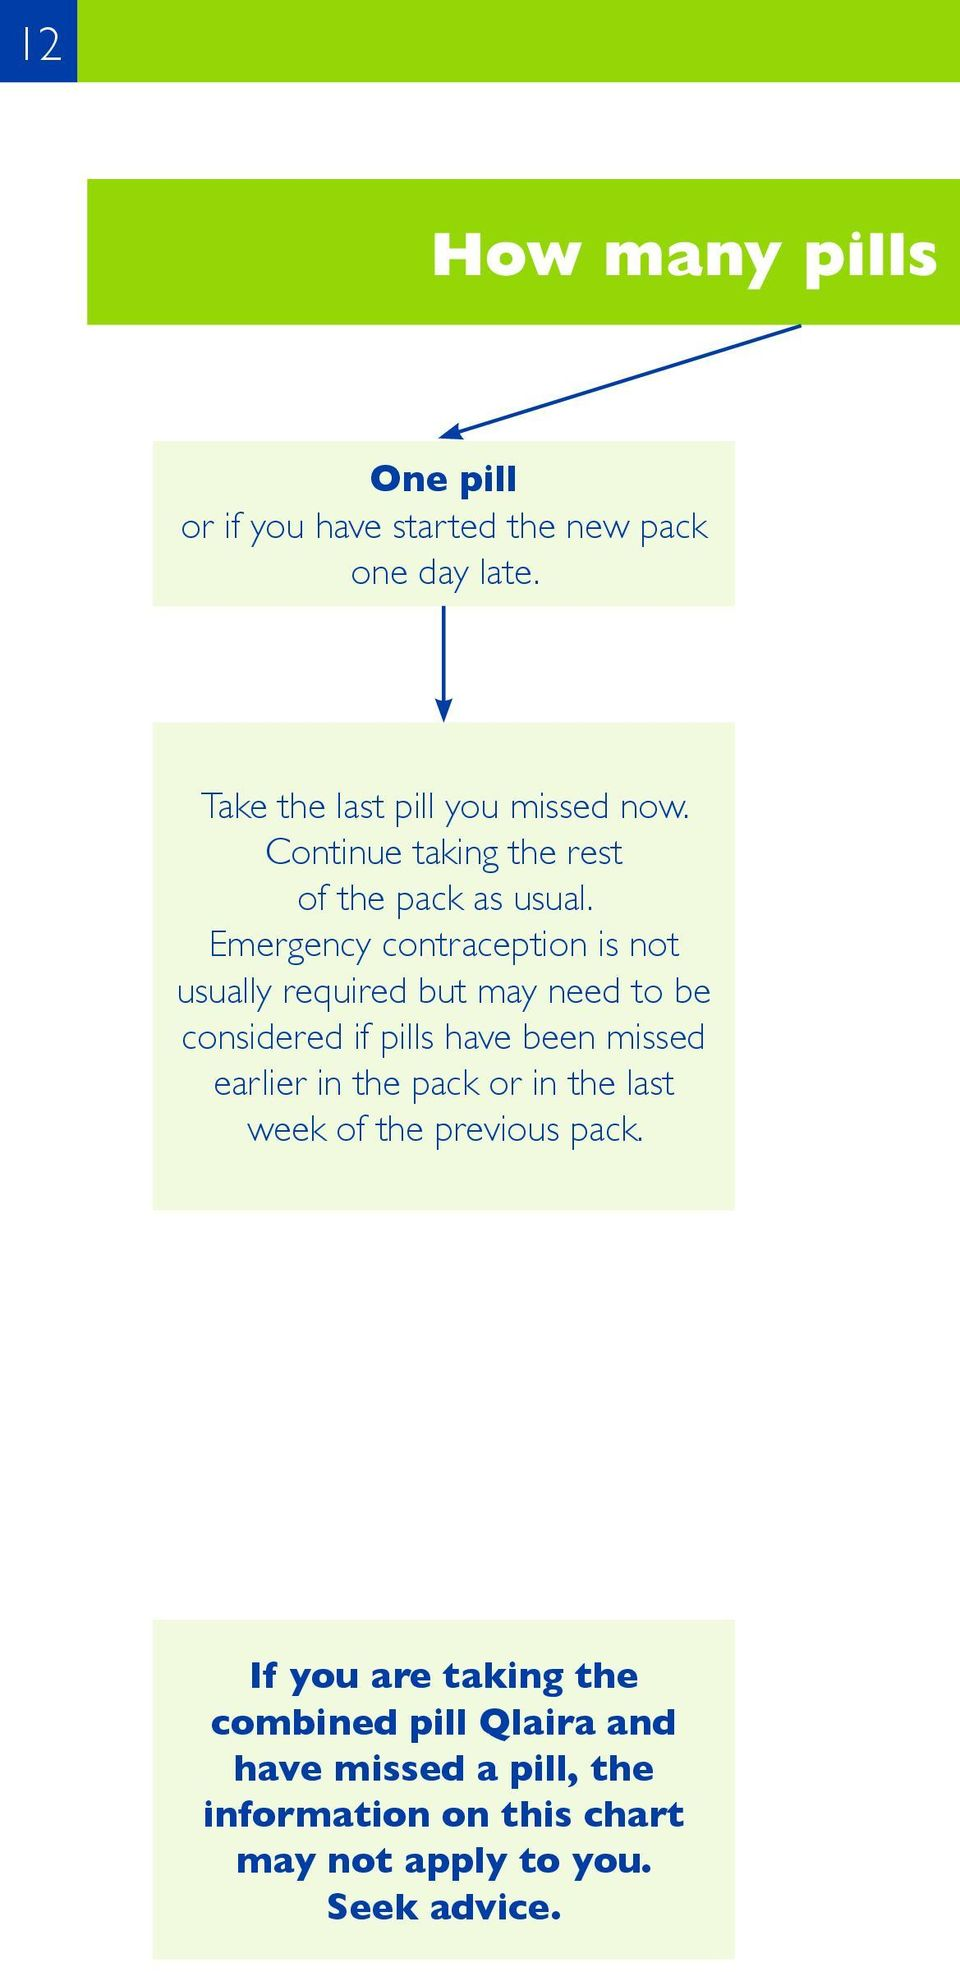 Emergency contraception is not usually required but may need to be considered if pills have been missed earlier